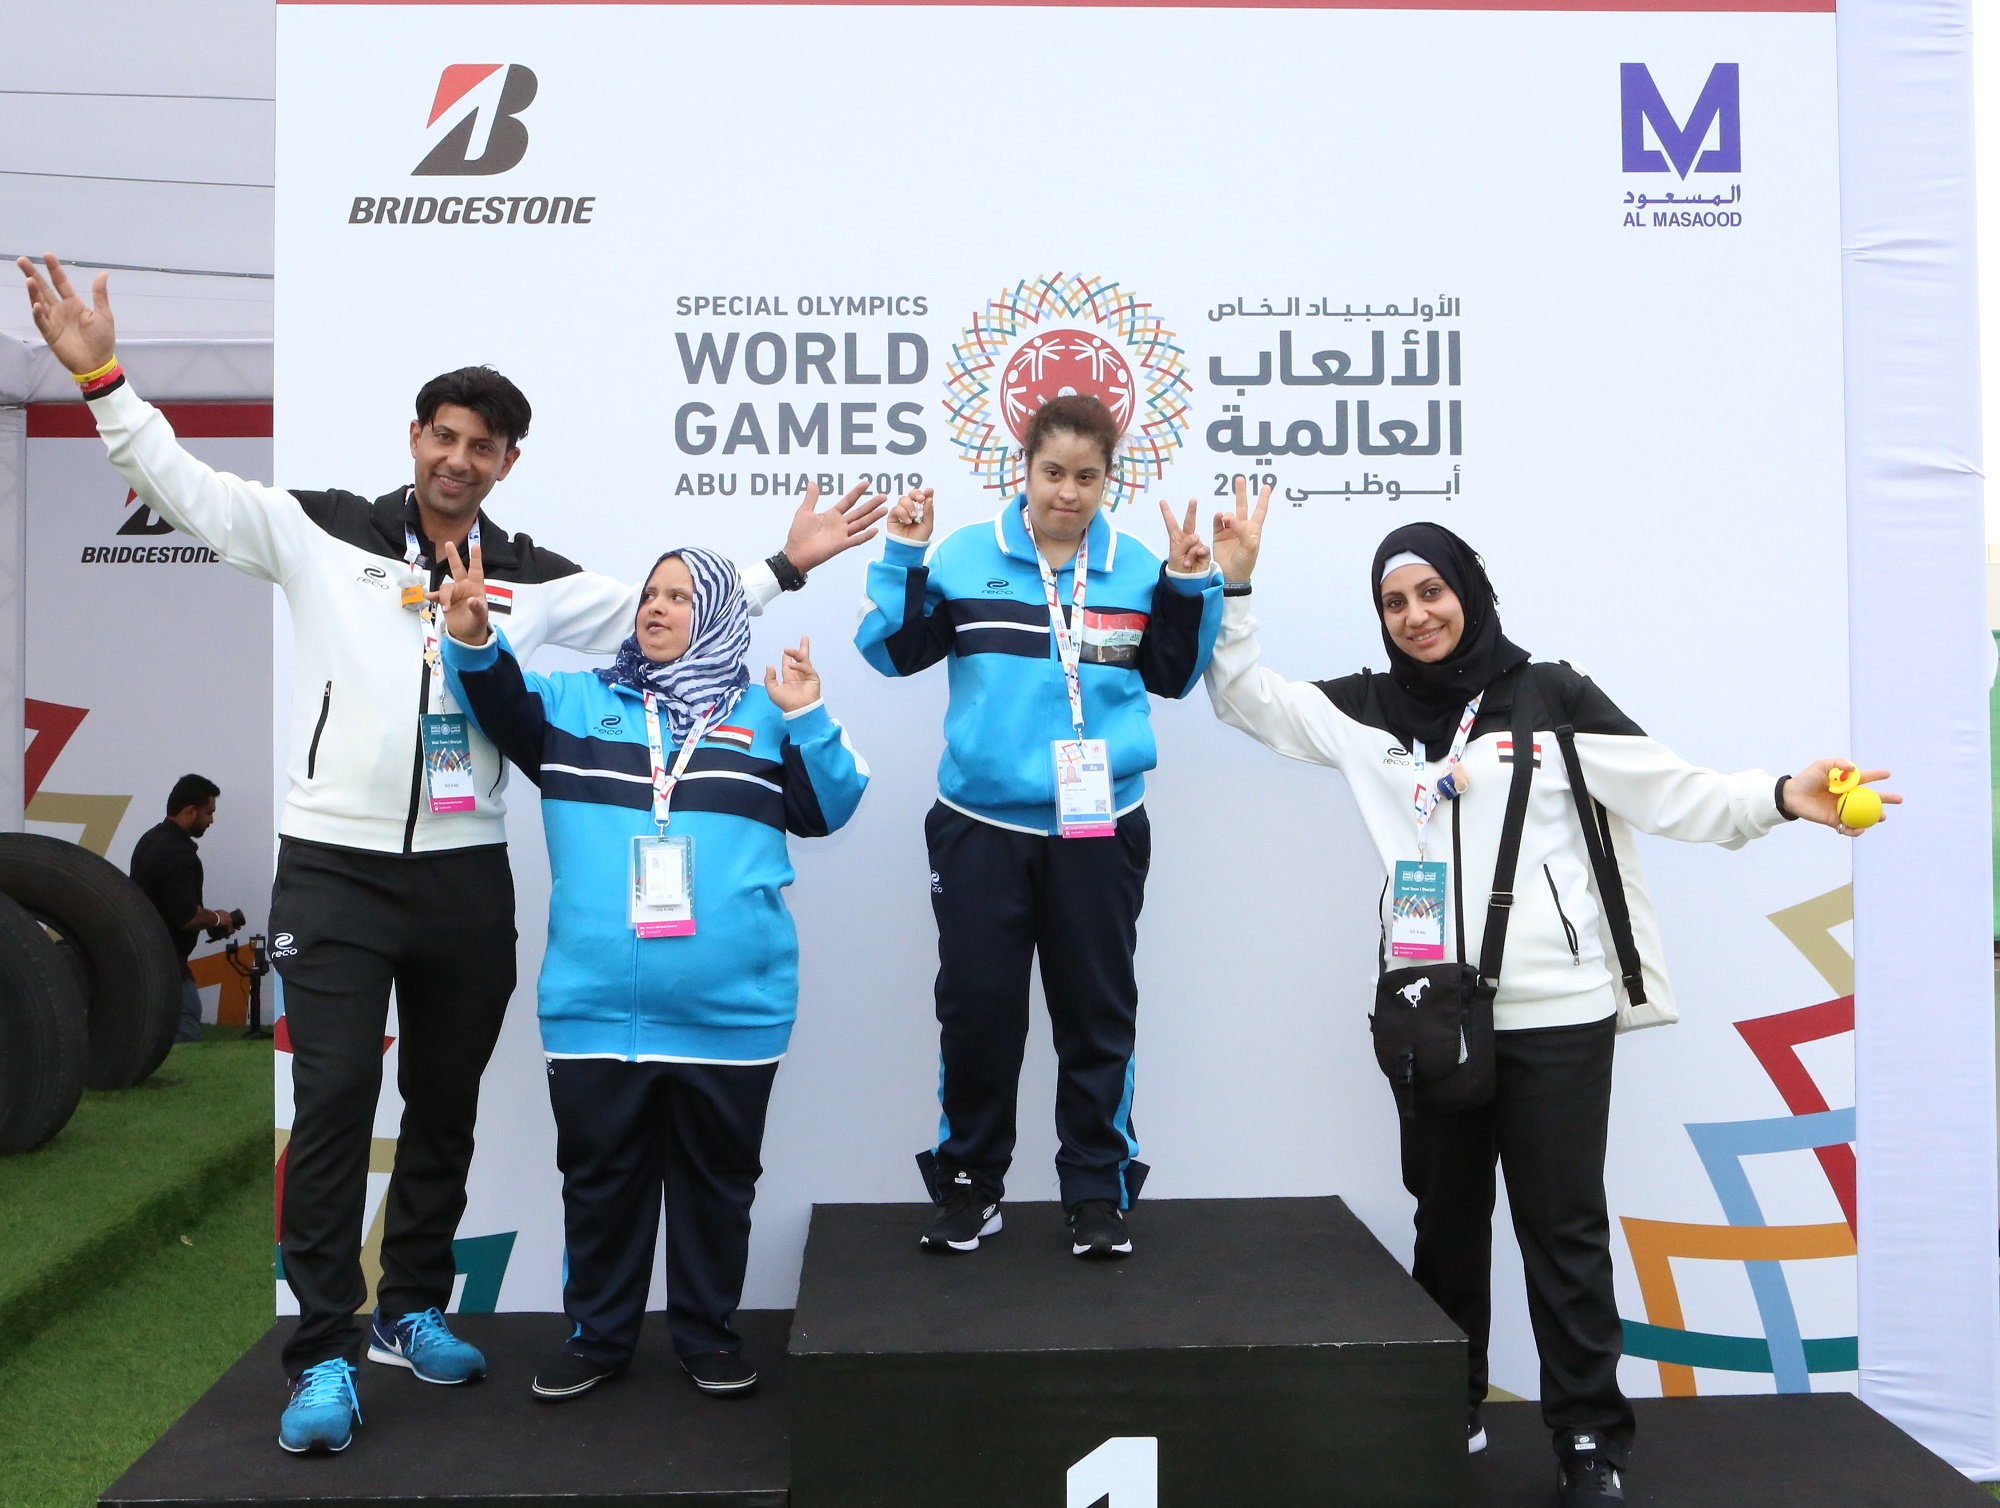 Bridgestone to host 'The Bridgestone Tyre Challenge' at Special Olympics World Games 2019